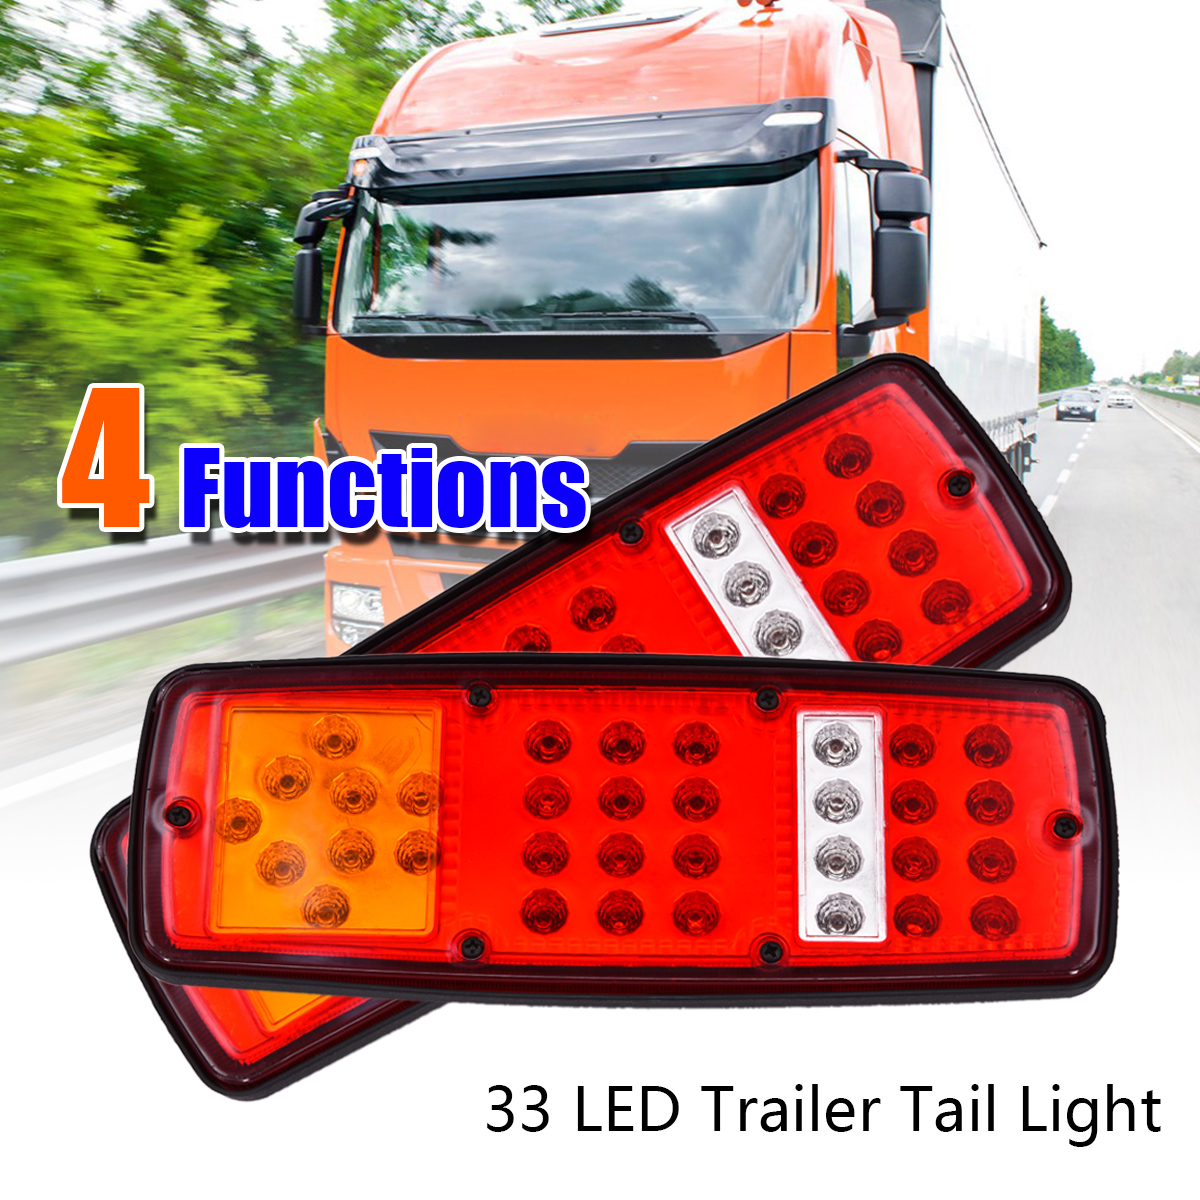 2pcs Rear Tail Lights 27.6*10.3cm 12V Truck Trailer Boat 33 LED Lamp Kit Tail Light Stop Indicator Waterproof-in Truck Light System from Automobiles & Motorcycles